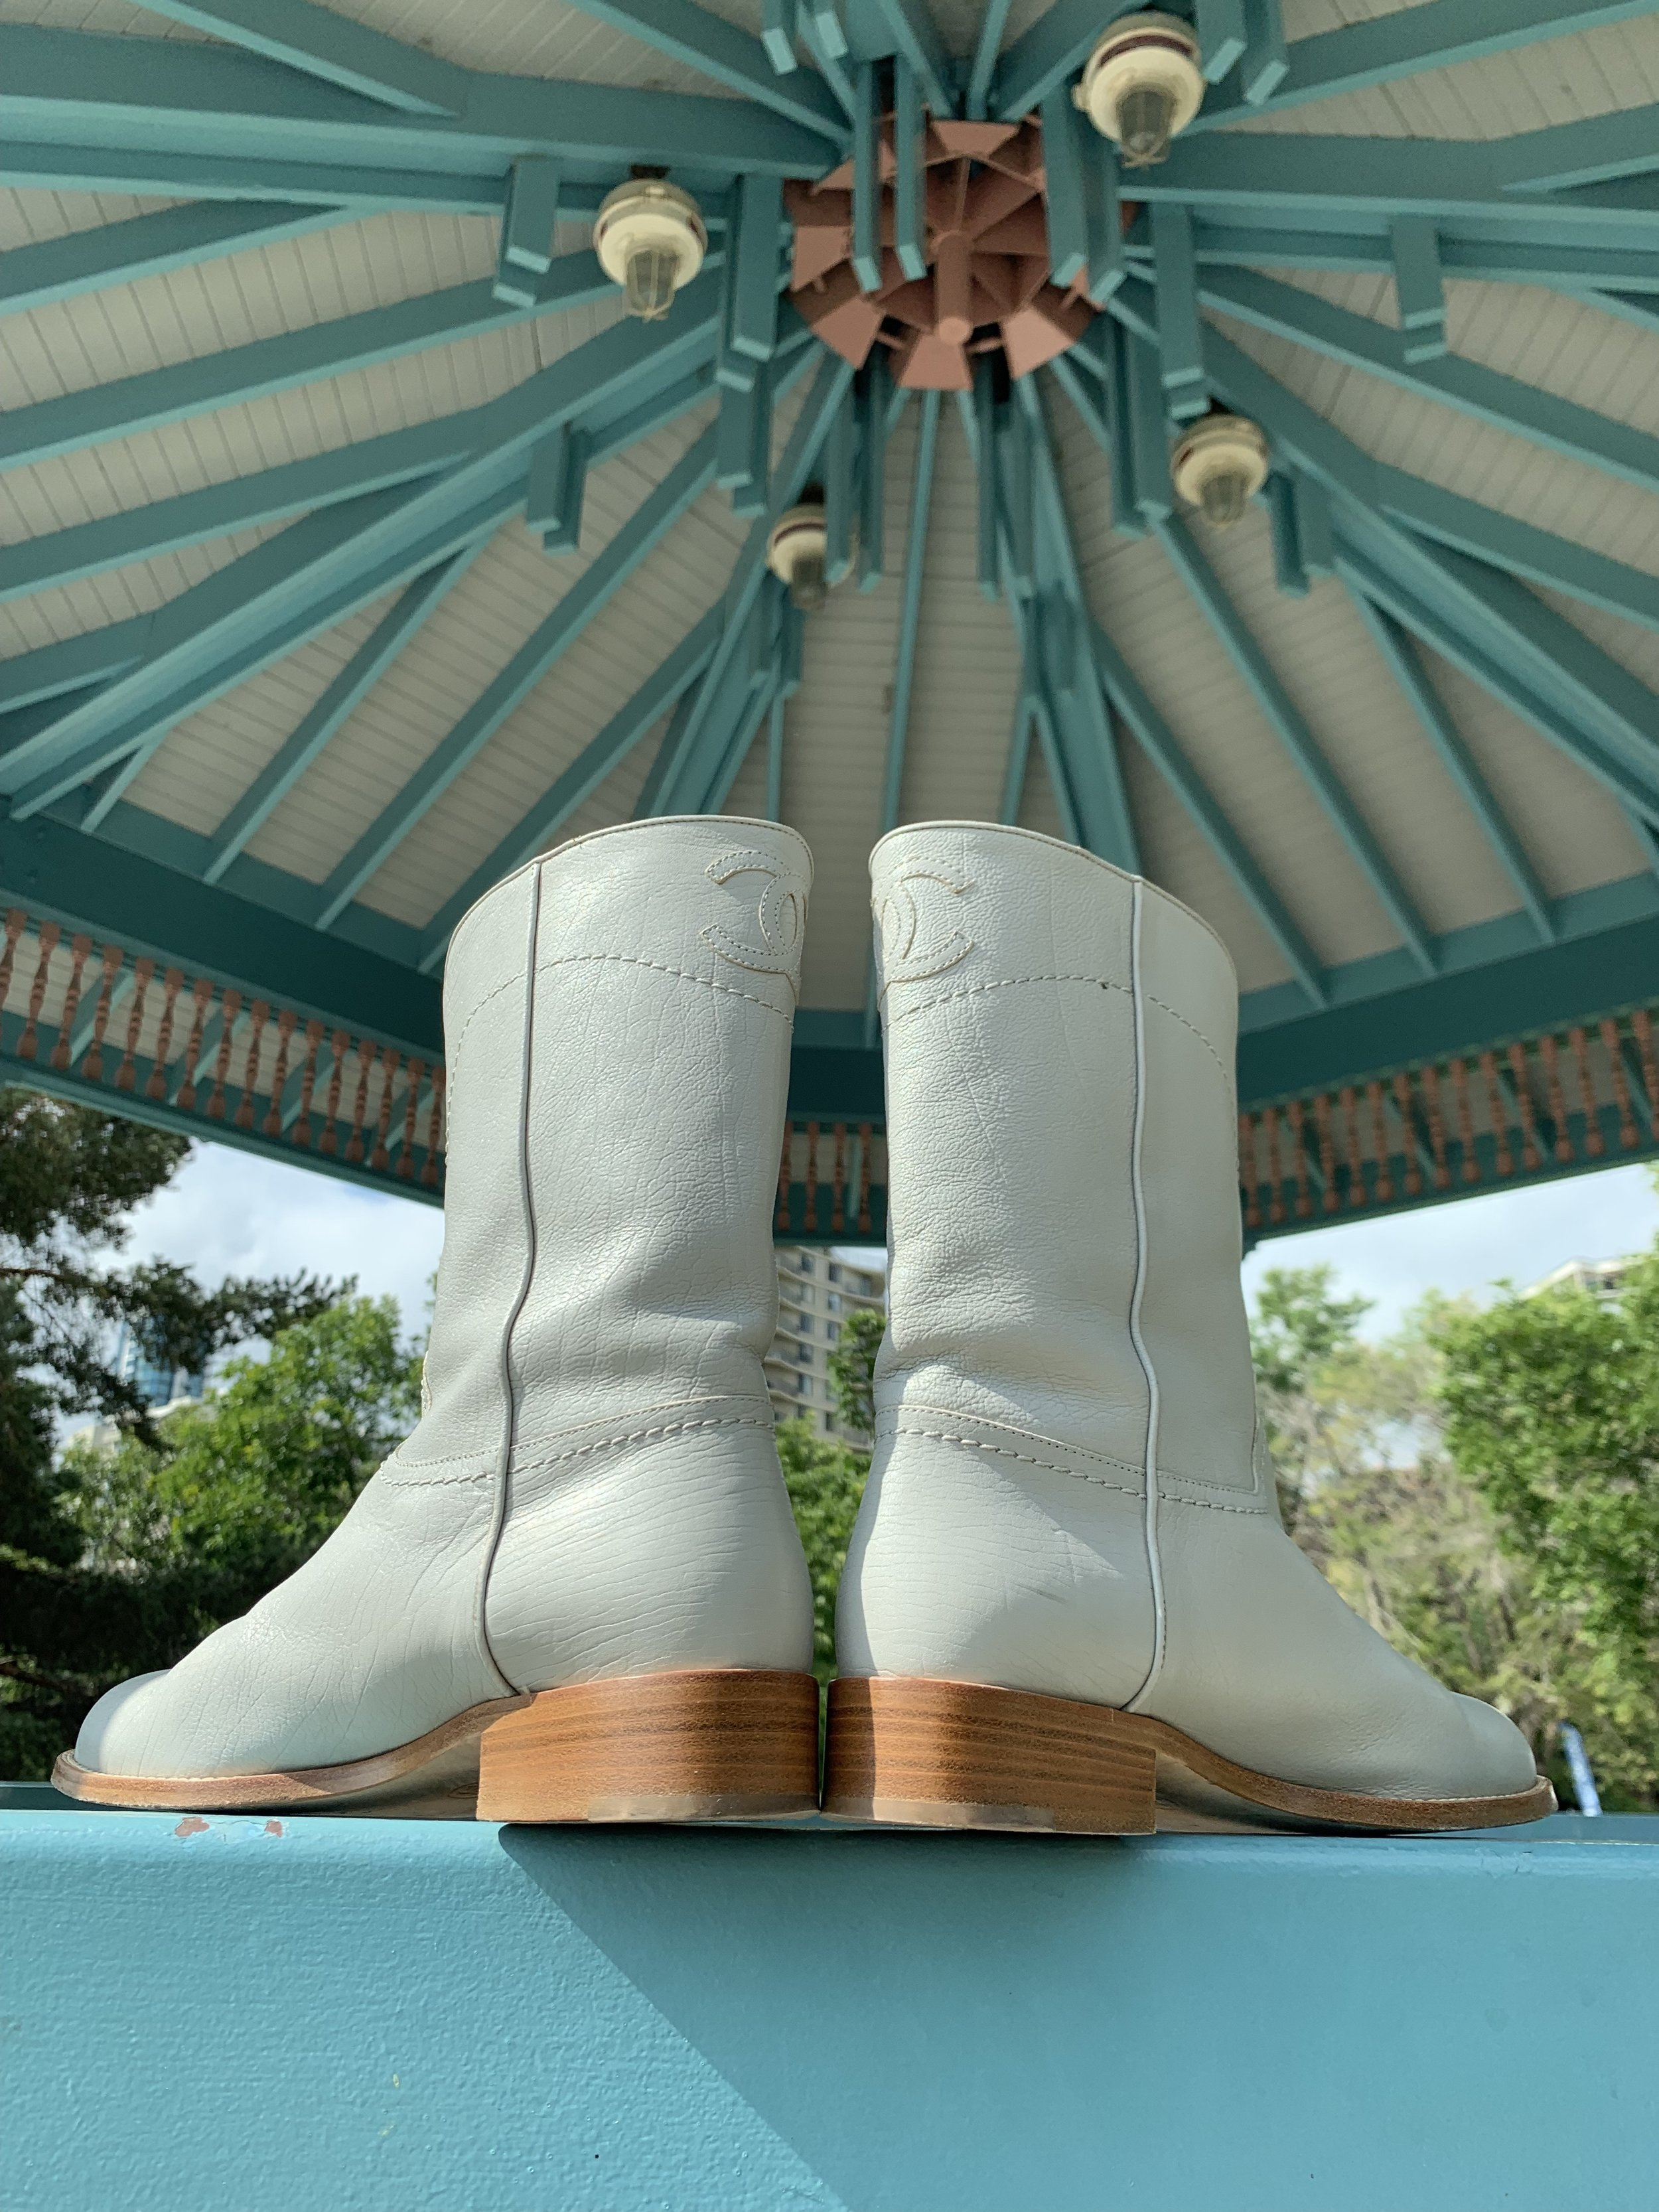 Western Boots - $598